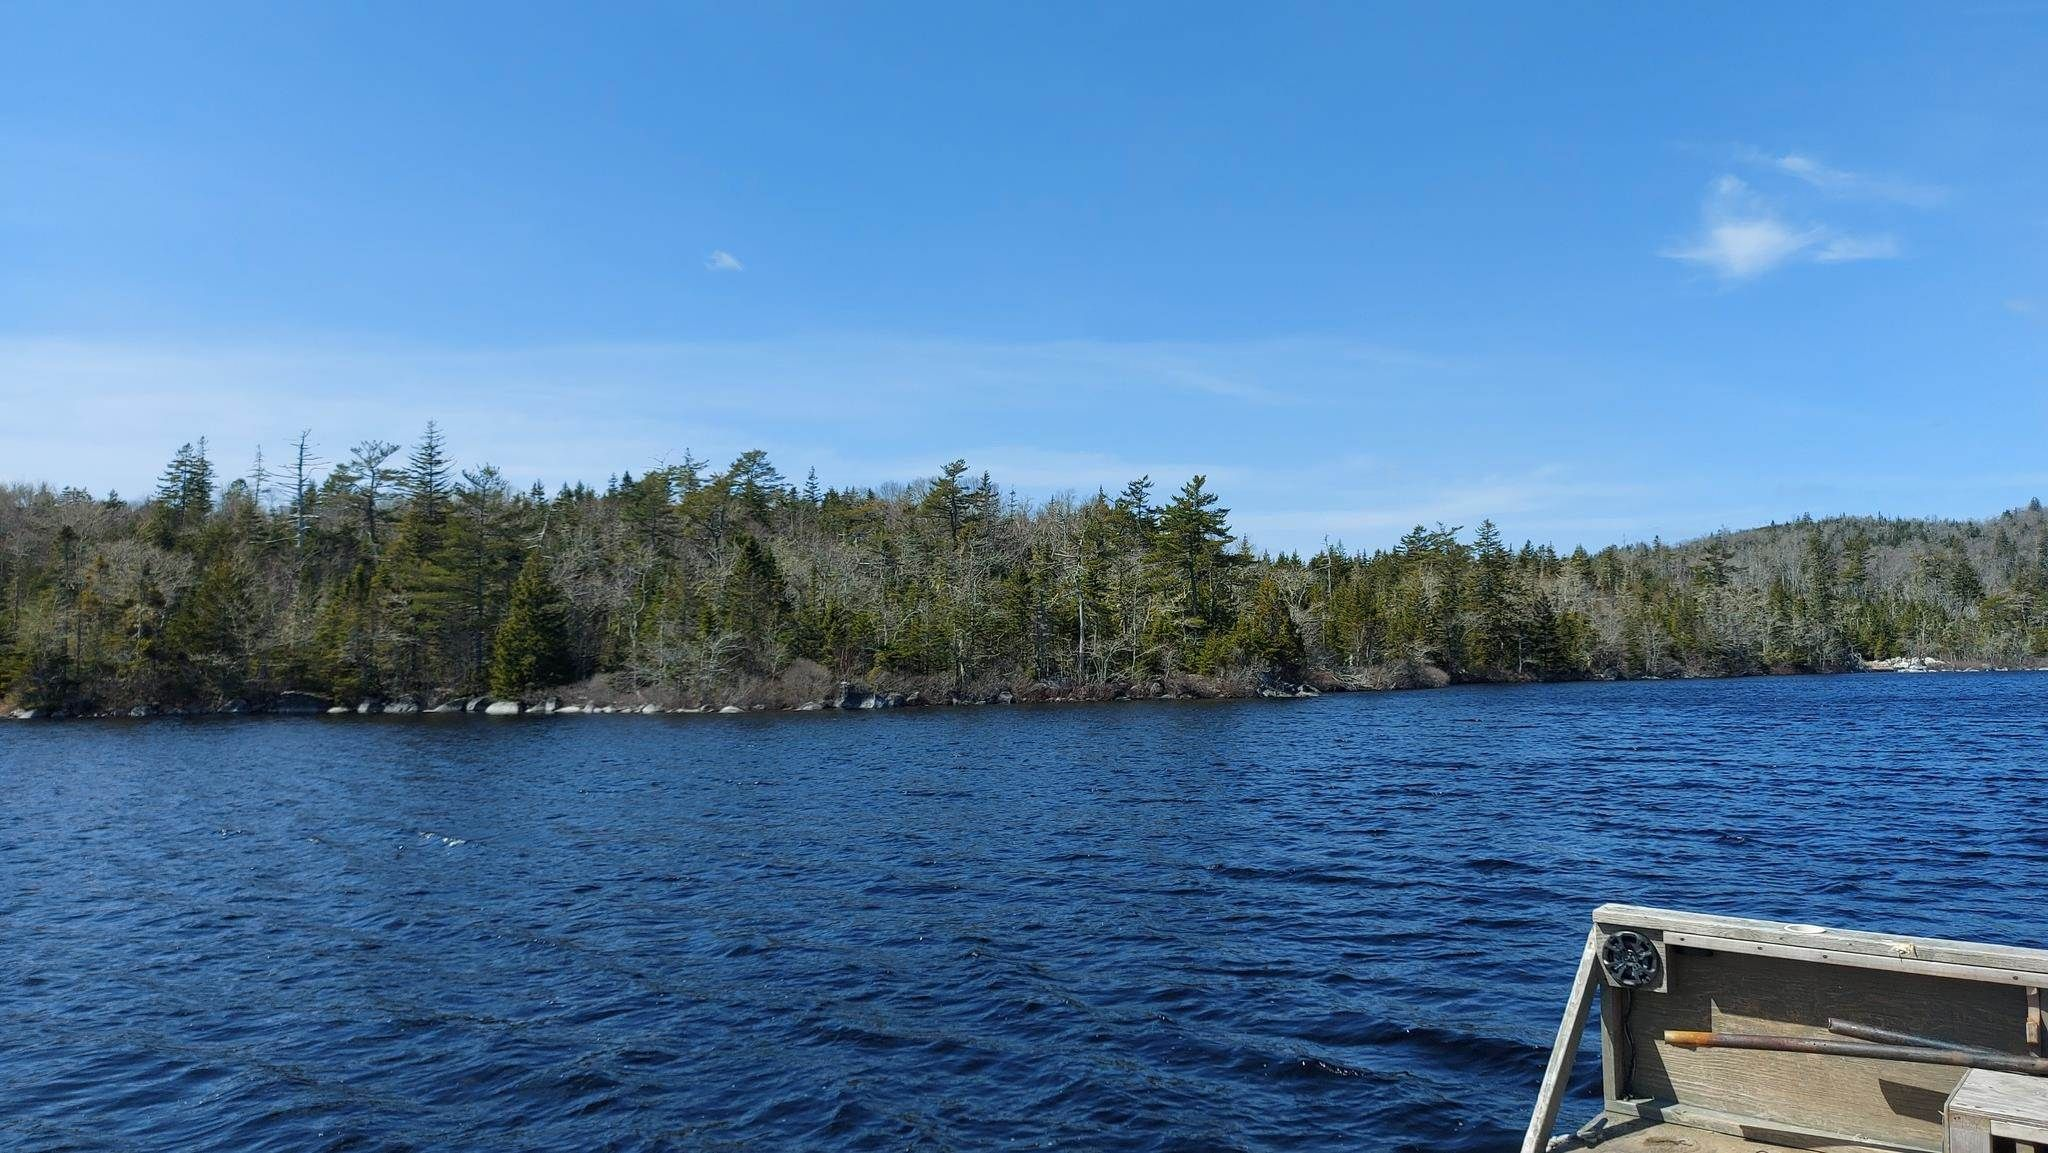 Photo 5: Photos: Lot 6 1212 Lake Charlotte Way in Upper Lakeville: 35-Halifax County East Vacant Land for sale (Halifax-Dartmouth)  : MLS®# 202113698